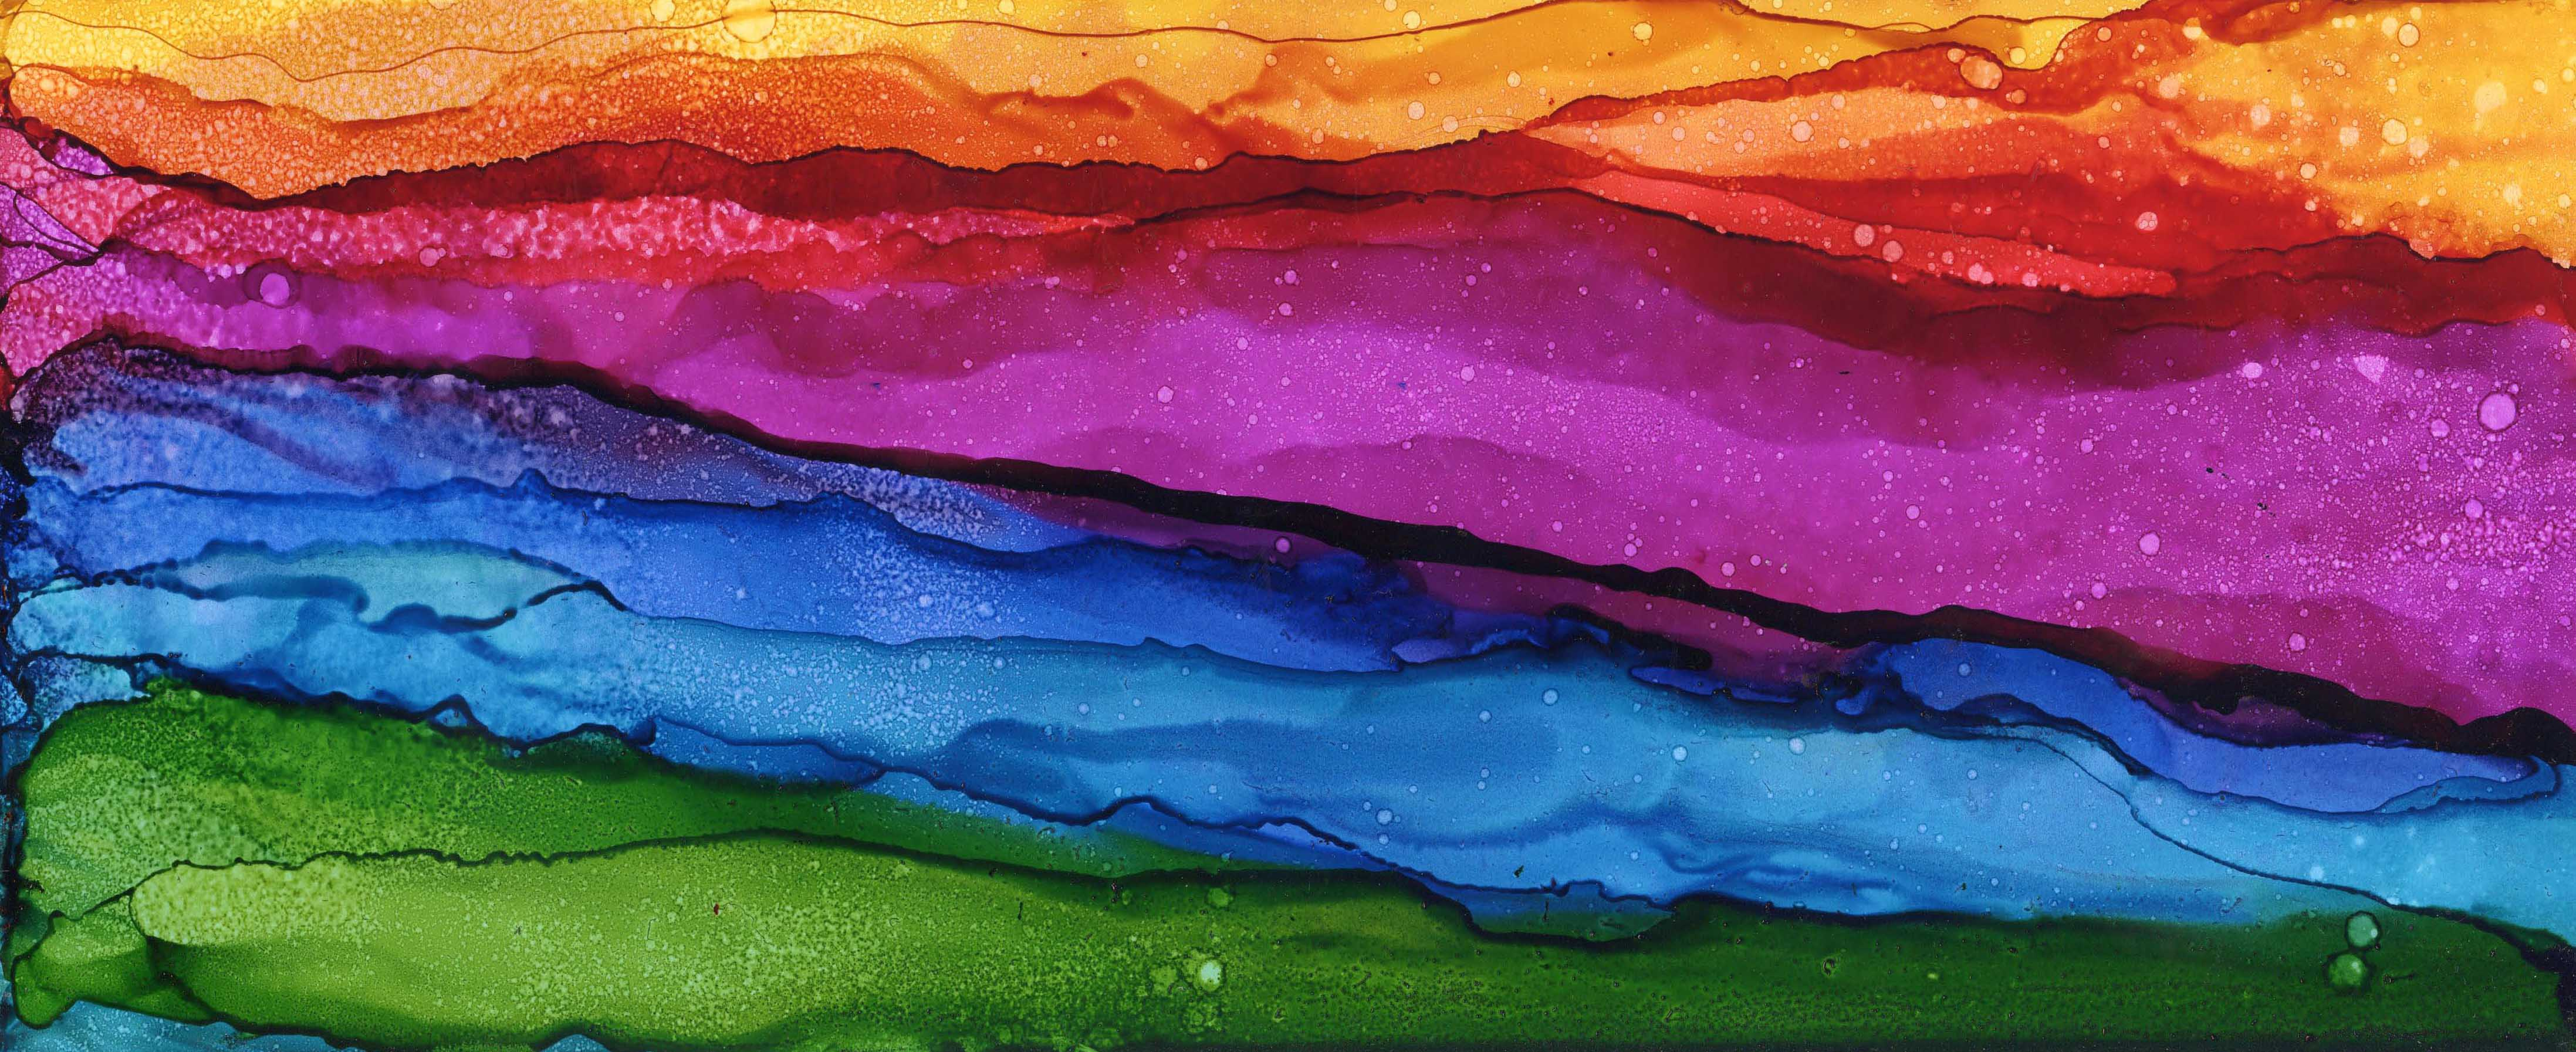 Magenta Mountain Valley - Alcohol Ink 6 X 15 - Sold - Print Available